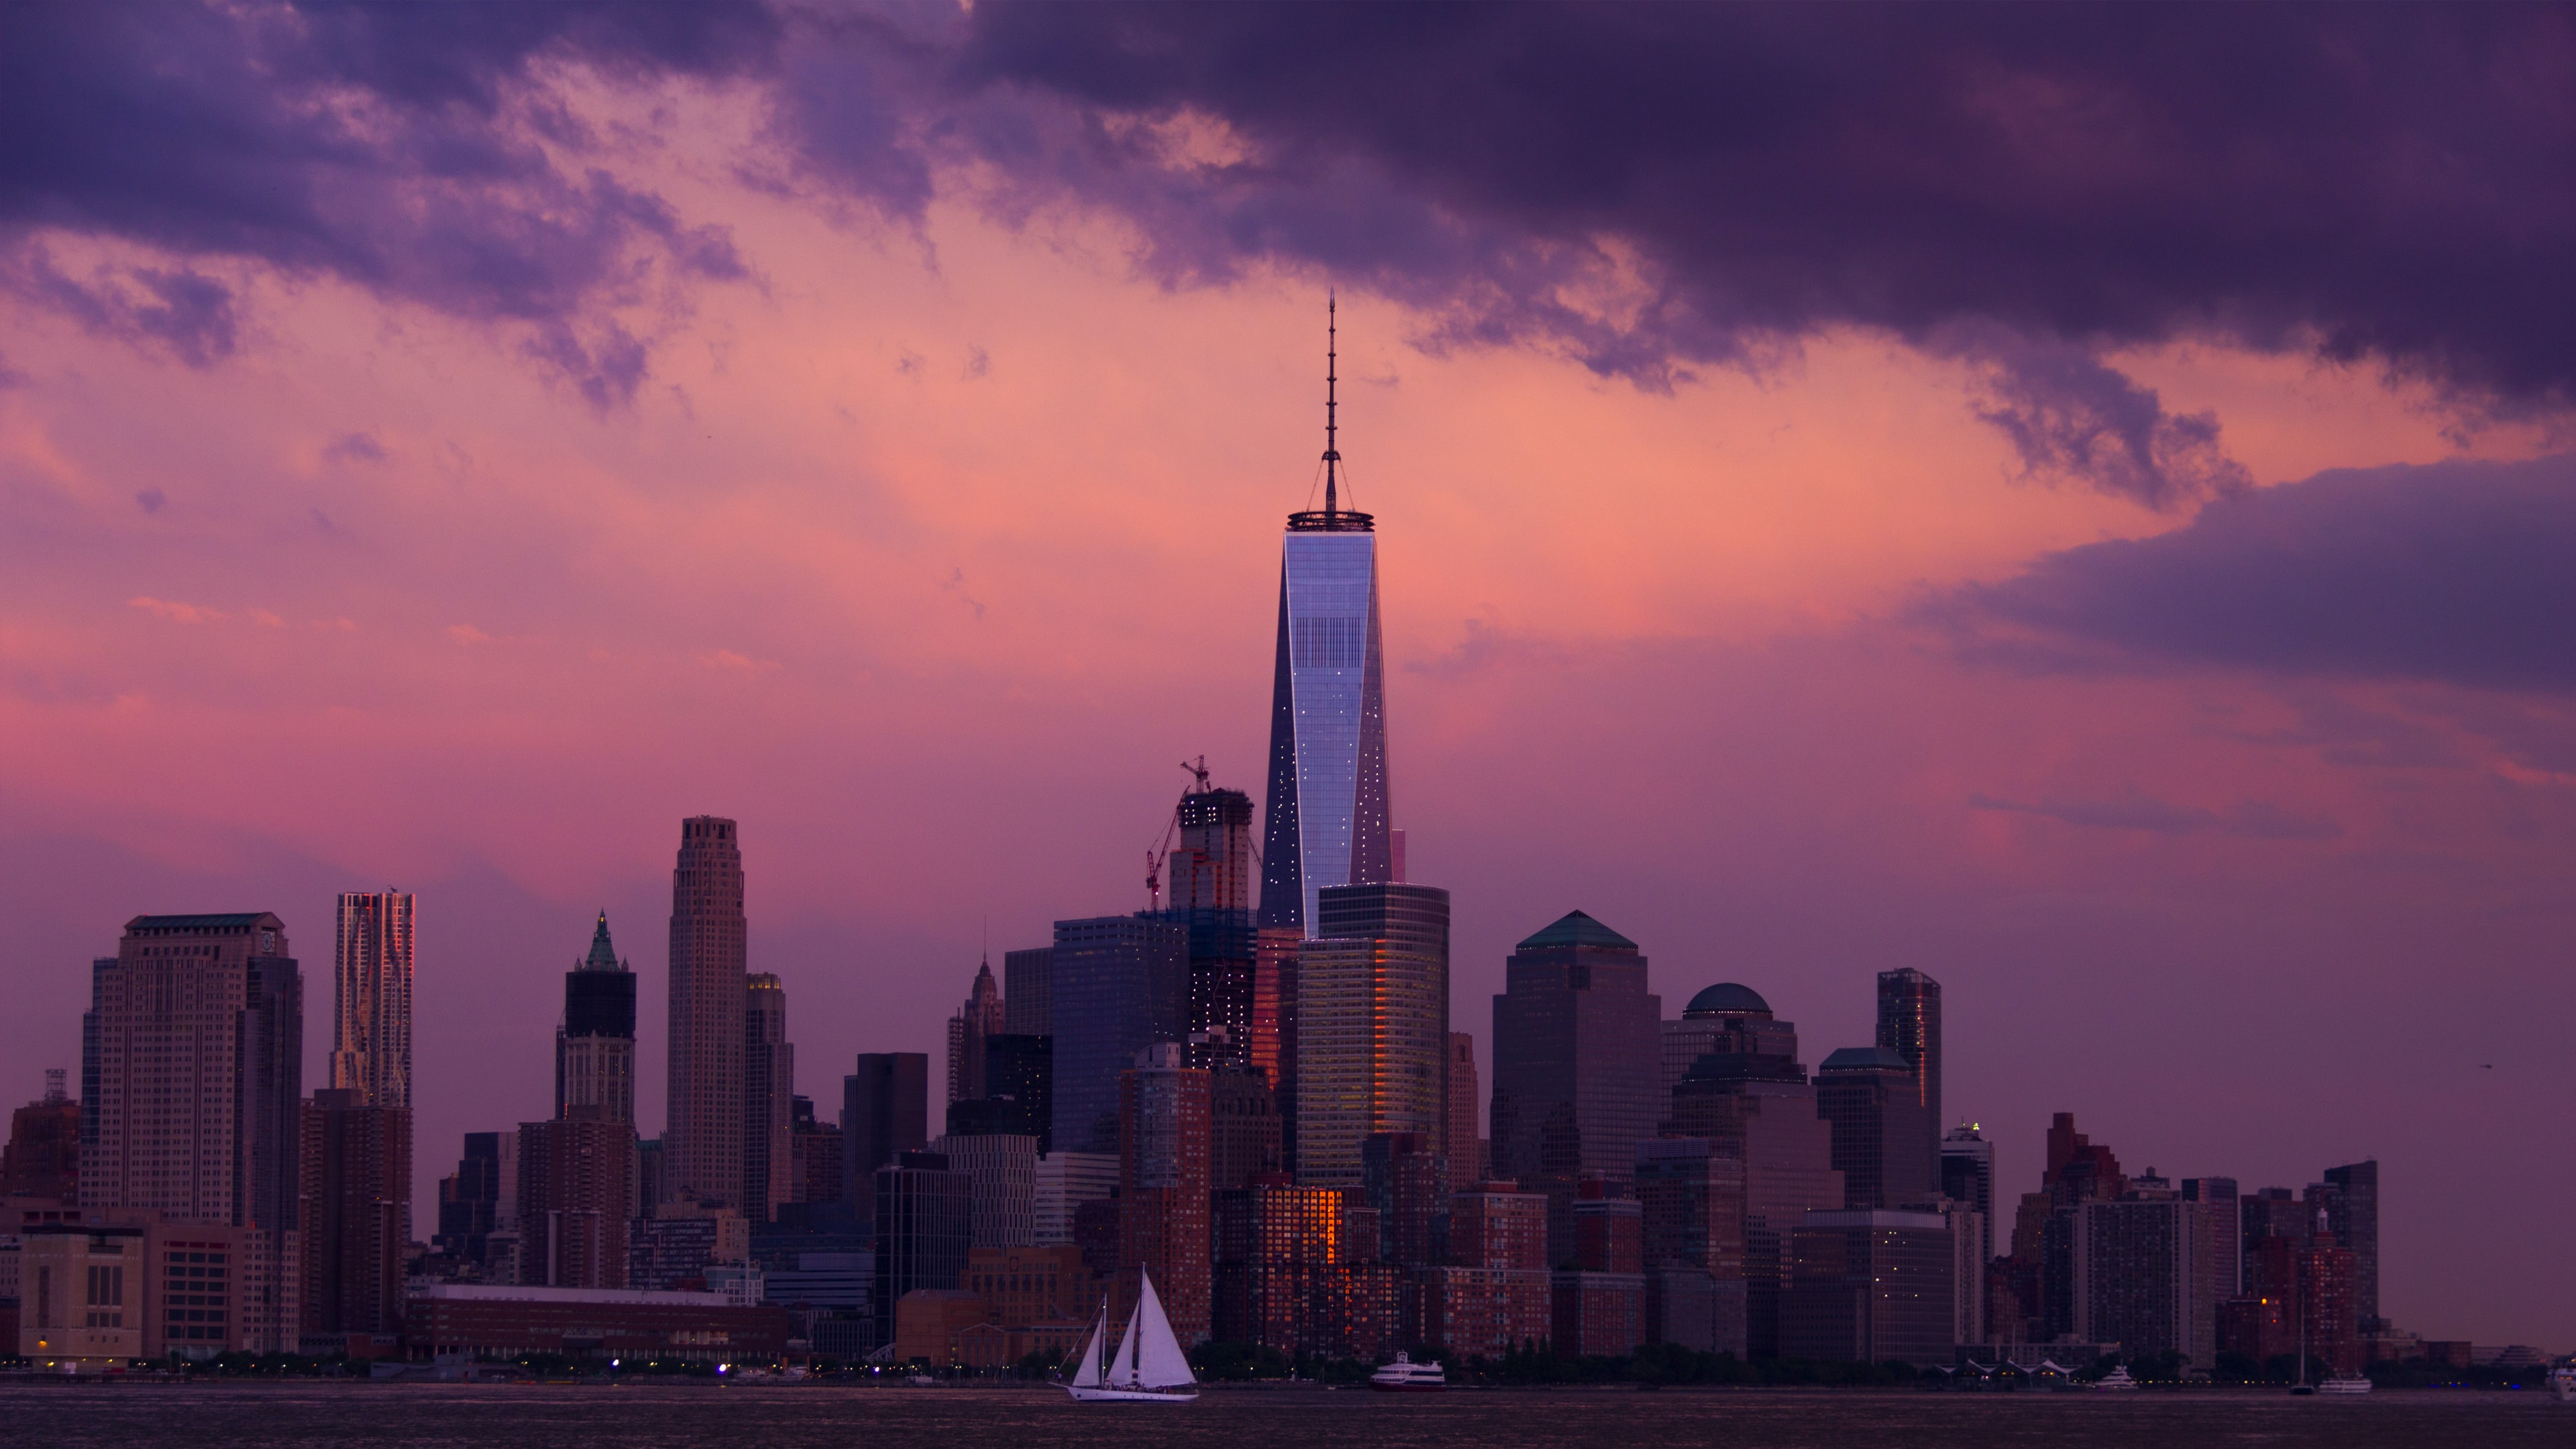 View of the New York City skyline with a beautiful pink and purple sunset